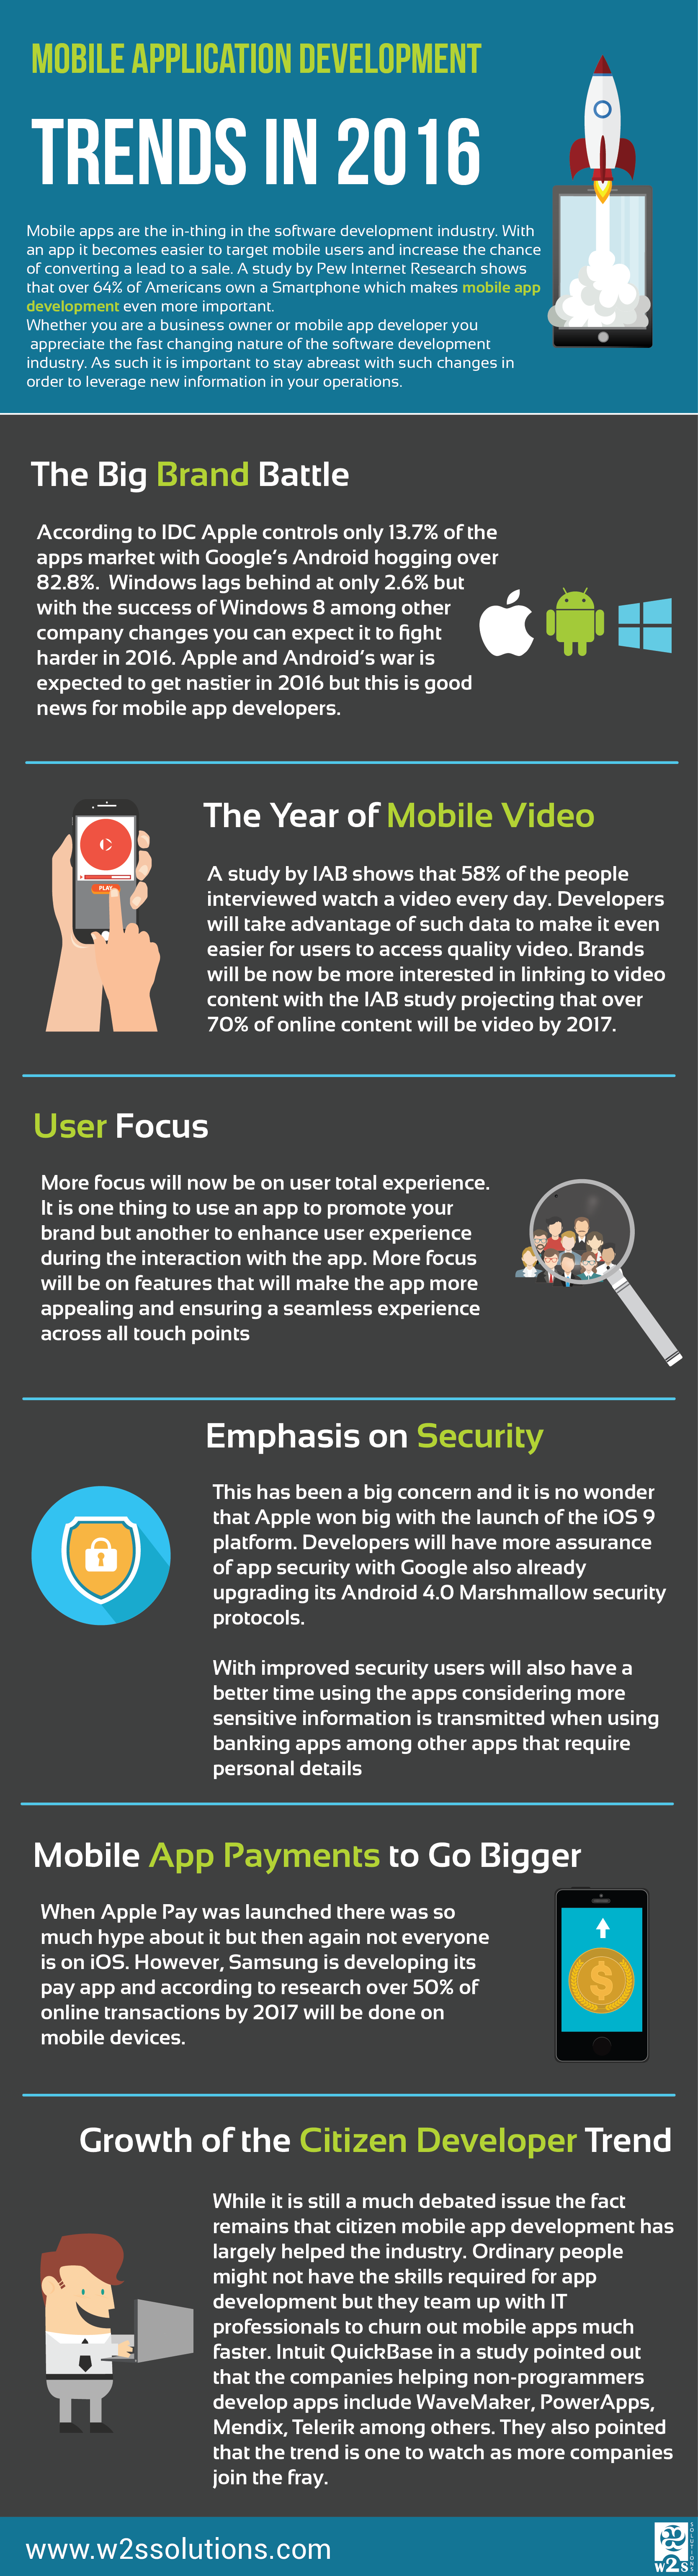 Mobile application development trends 2016 infographics